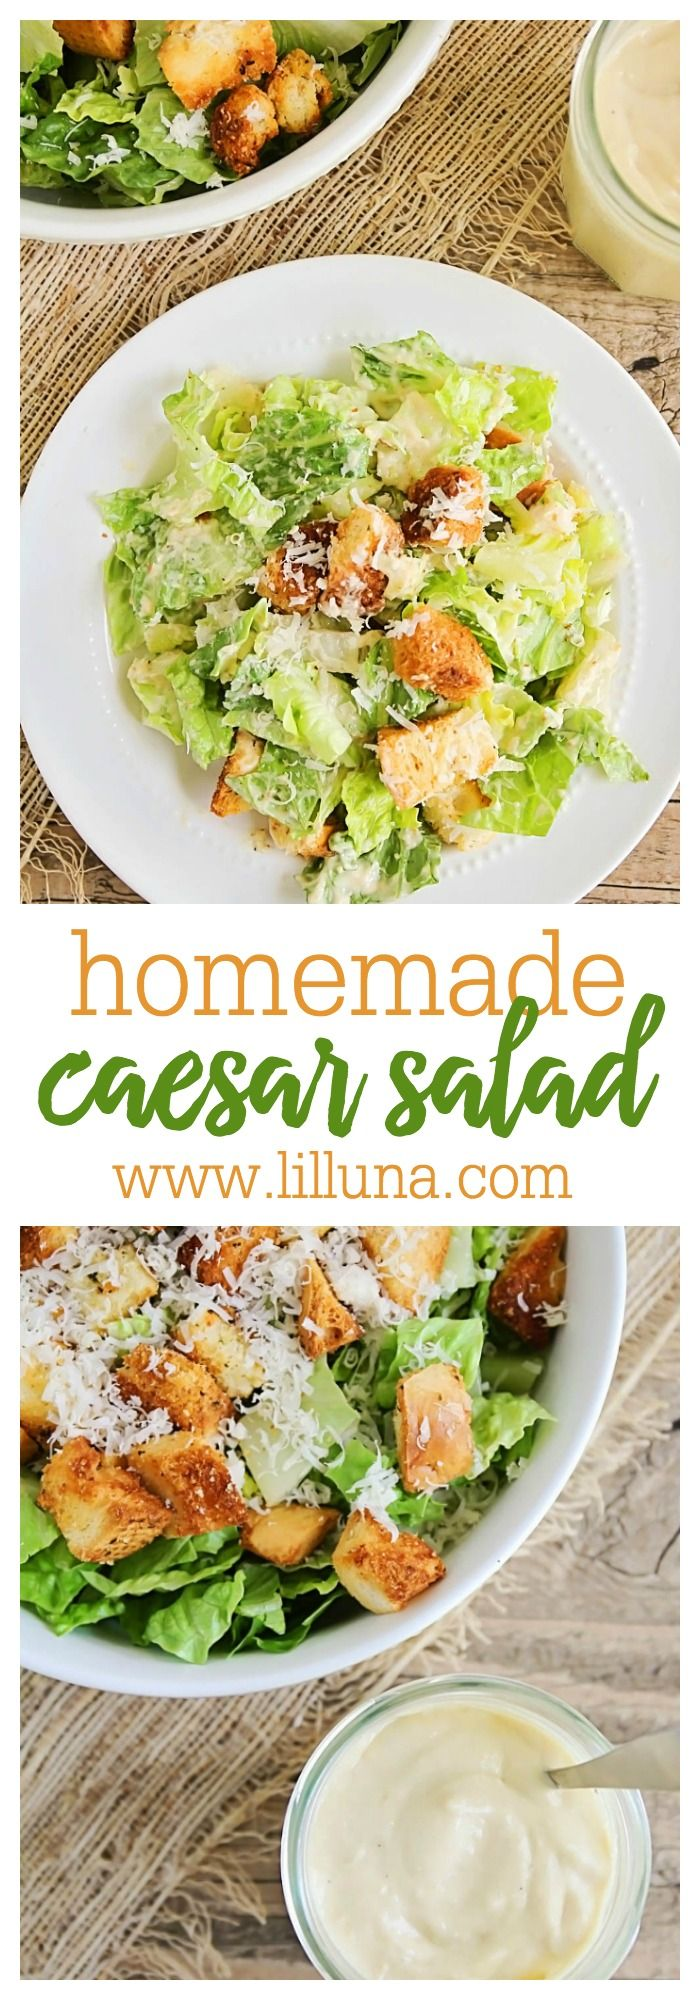 Delicious Homemade Caesar Salad with Homemade Croutons recipe on { lilluna.com }. Very easy and the prefect side salad.